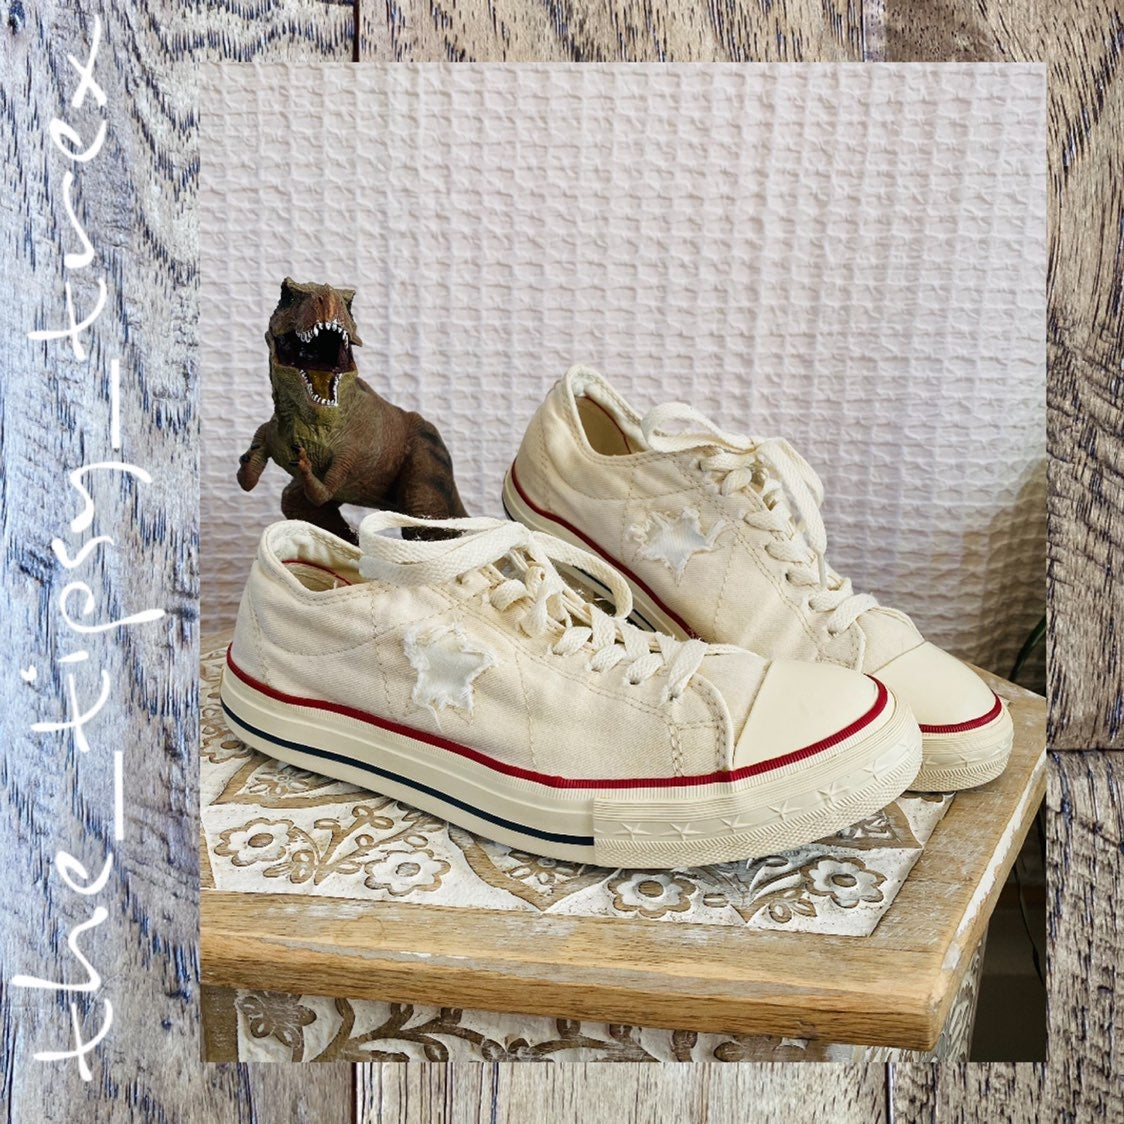 Converse One Star Ivory White Low Tops 9